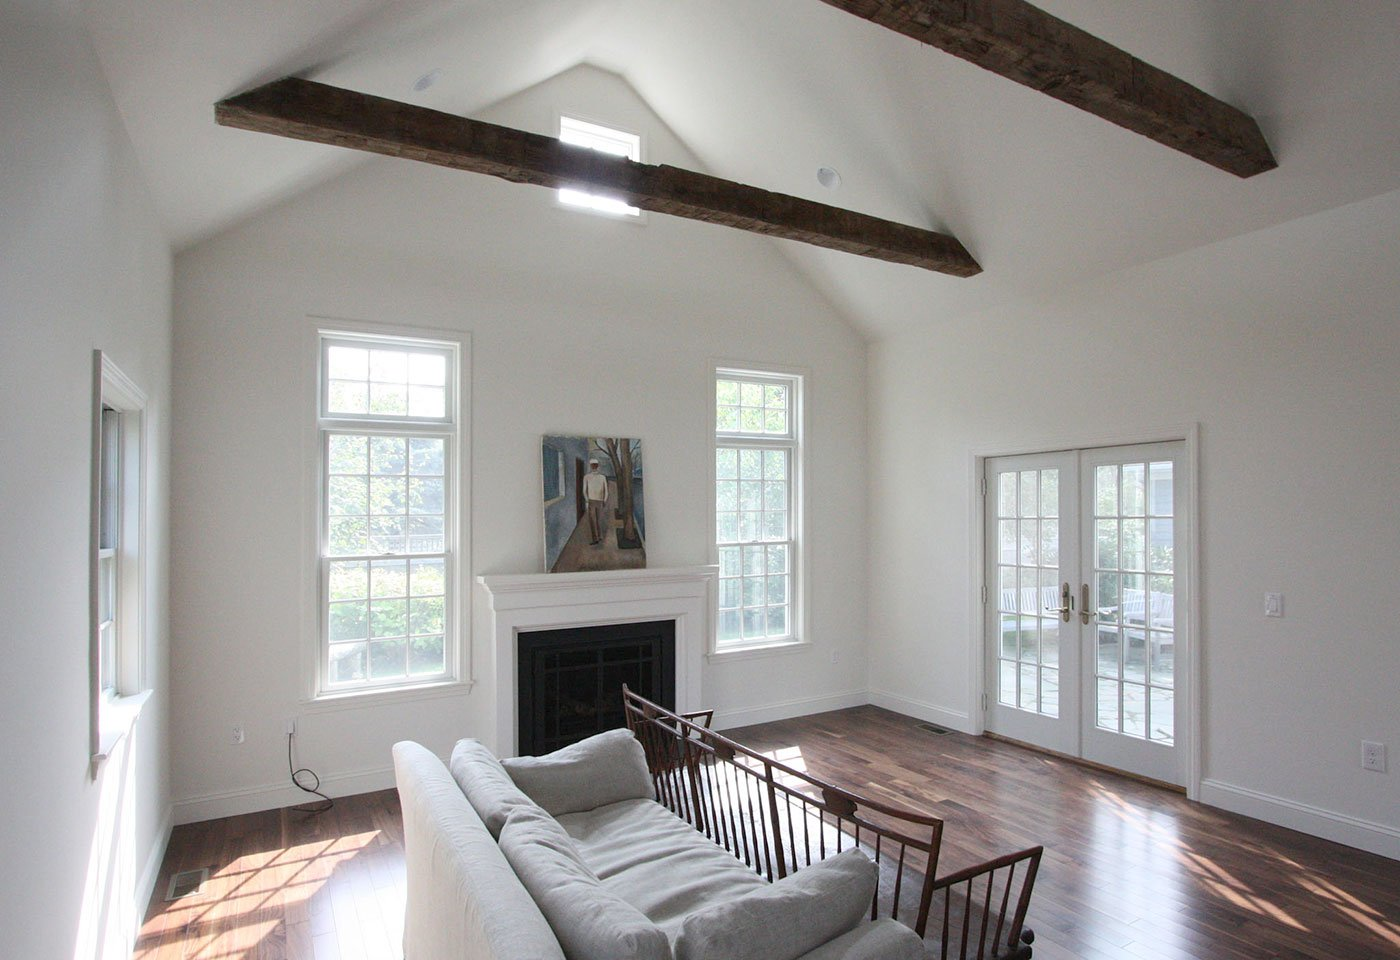 1 Family room addition by home renovation, in-house design build firm in RI